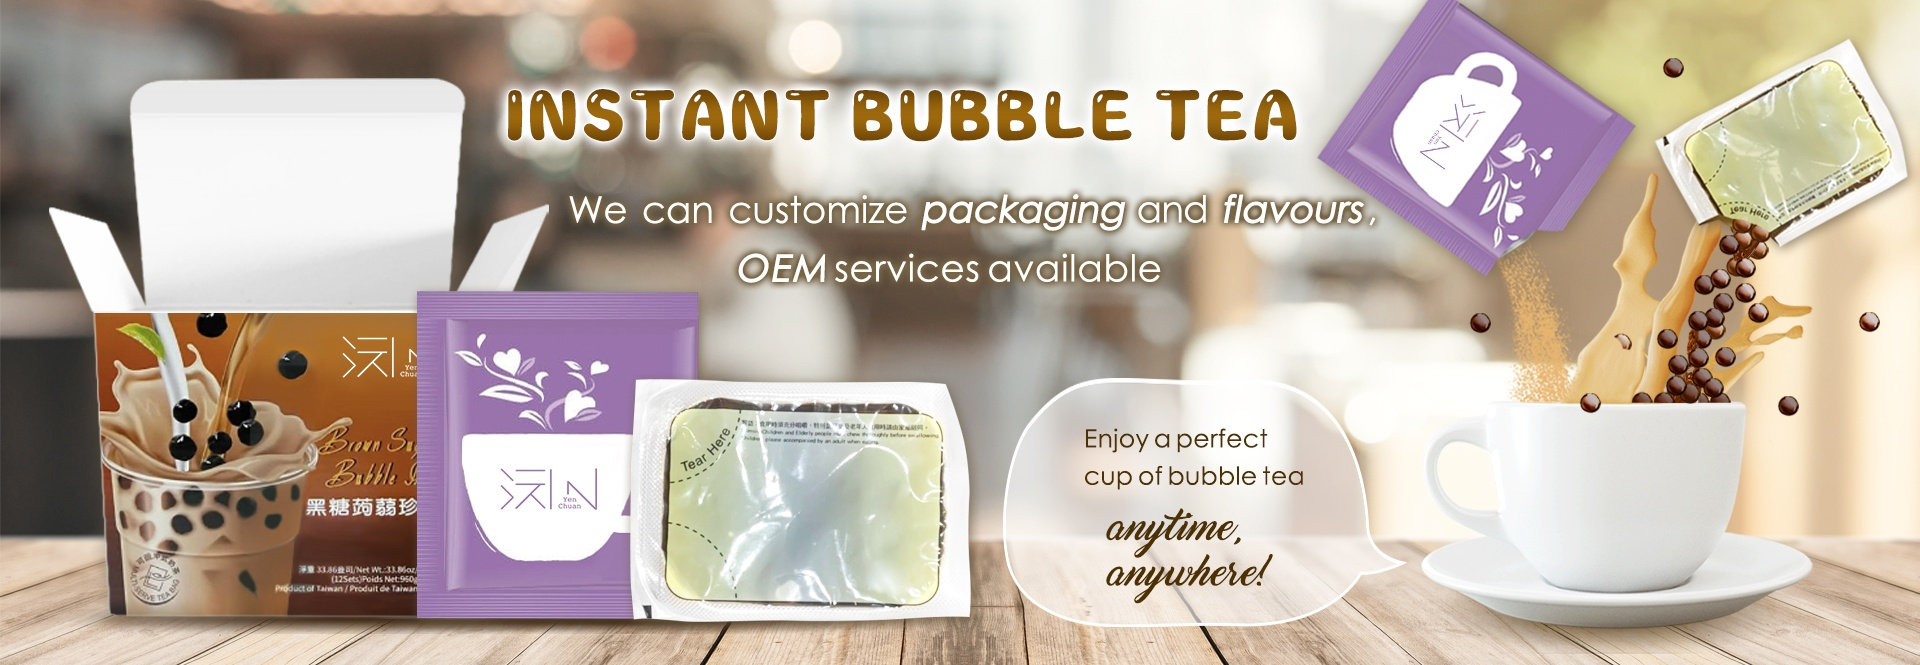 instant bubble tea